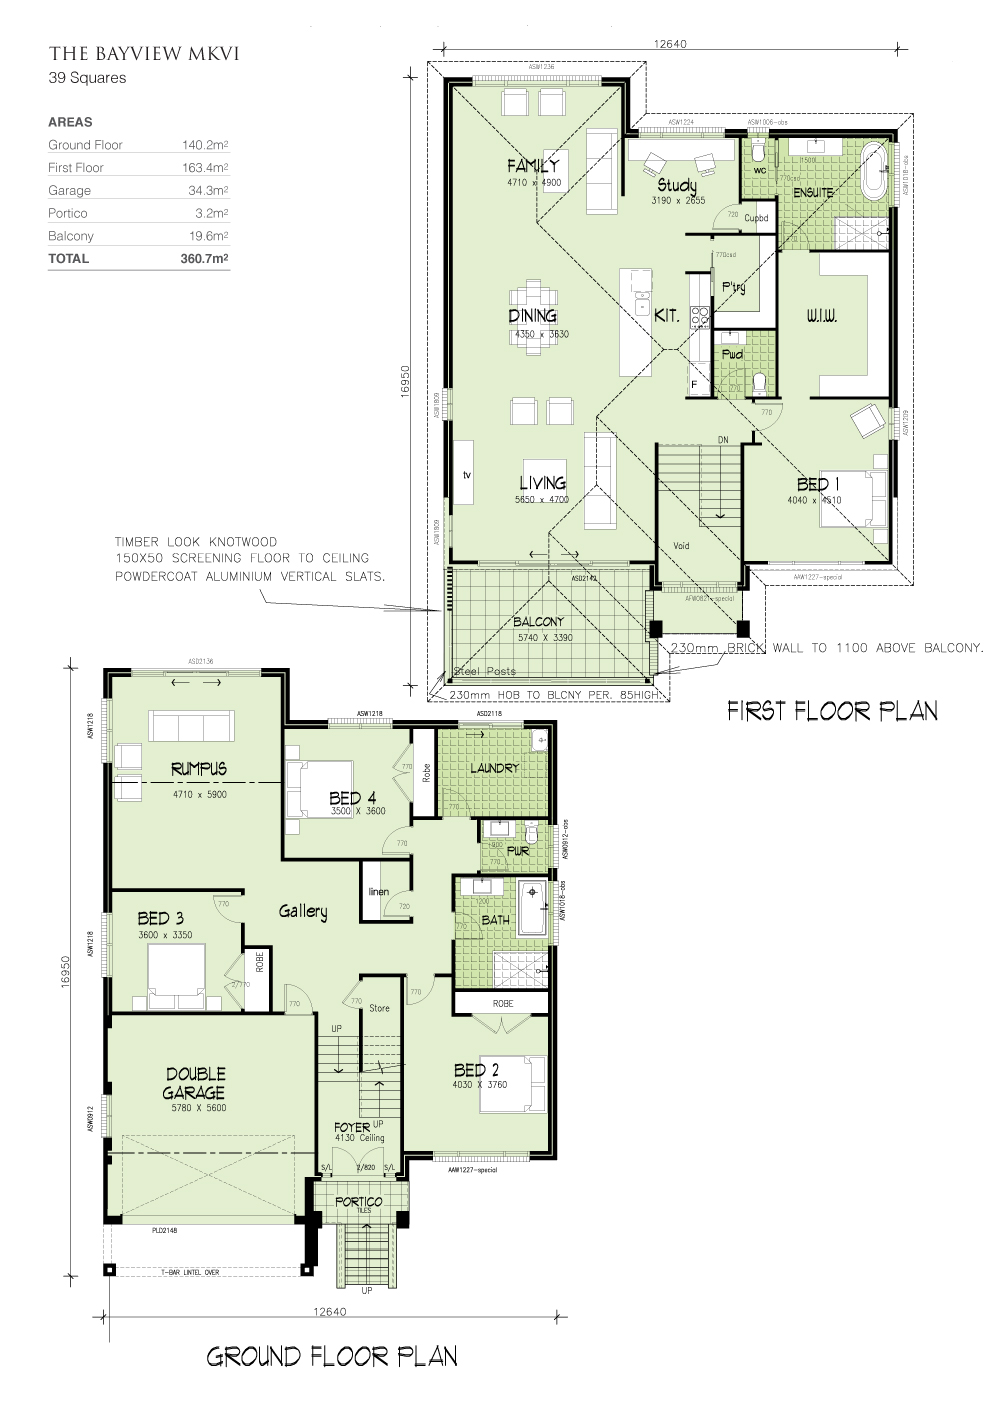 Bayview MK 6, Home Design, Tullipan Homes